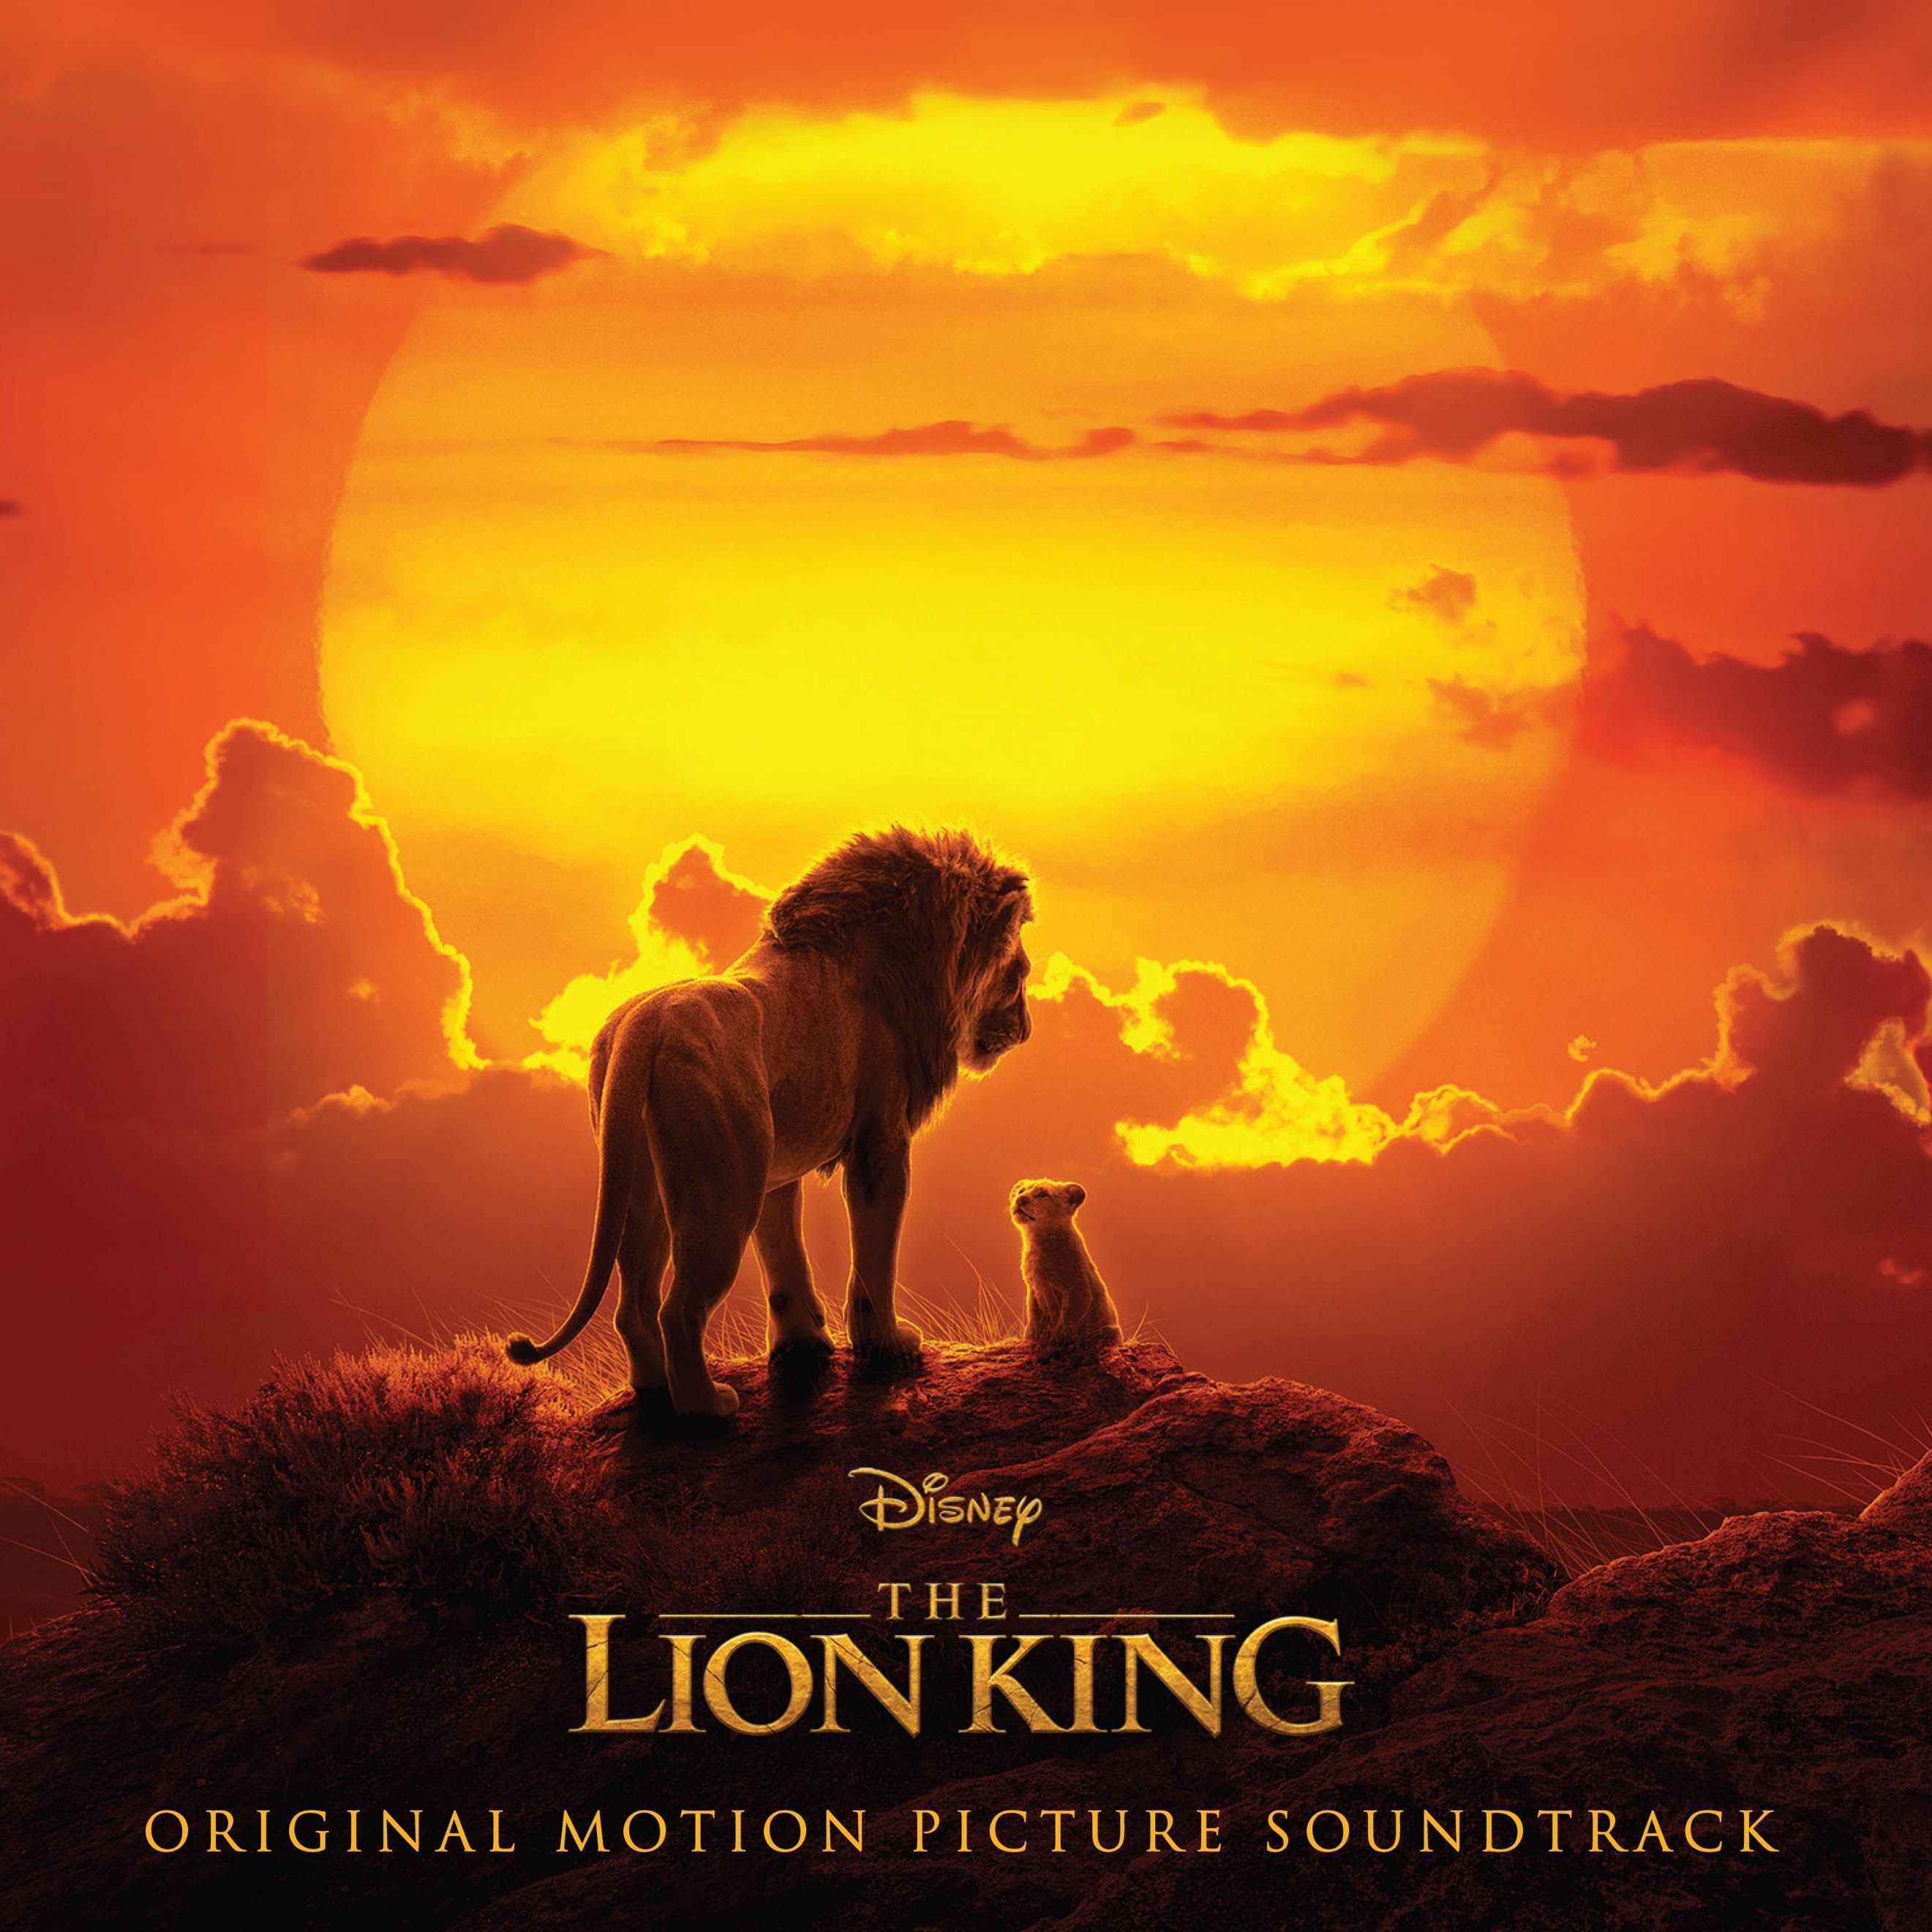 The Lion King Soundtrack Details Revealed Includes New Song